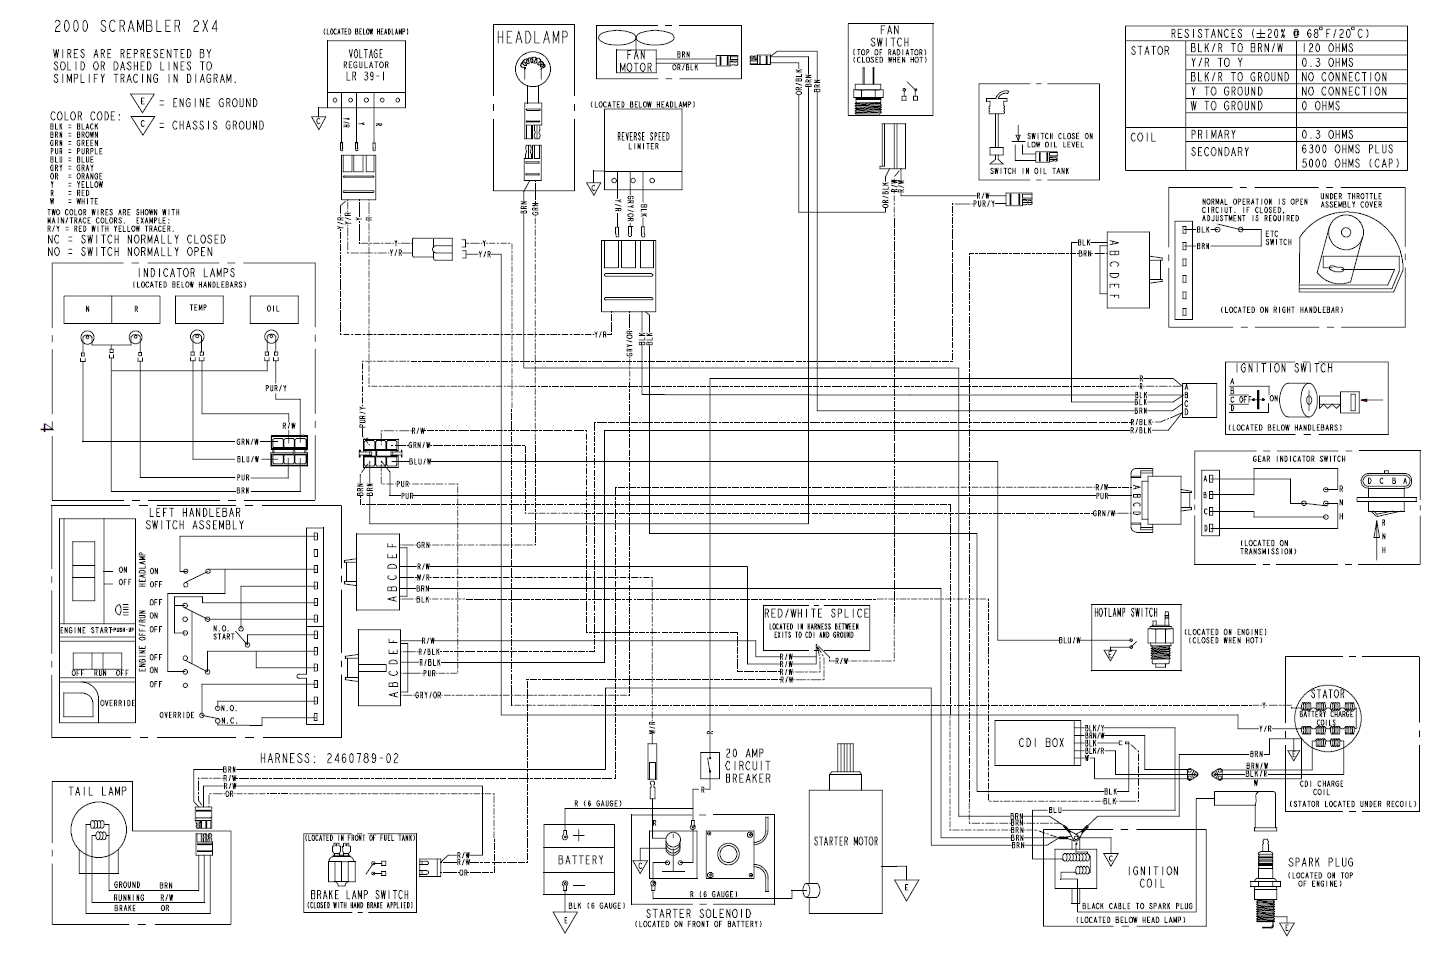 polaris rzr wiring diagram polaris printable wiring wiring diagram for polaris razr 800 the wiring diagram on polaris rzr 1000 wiring